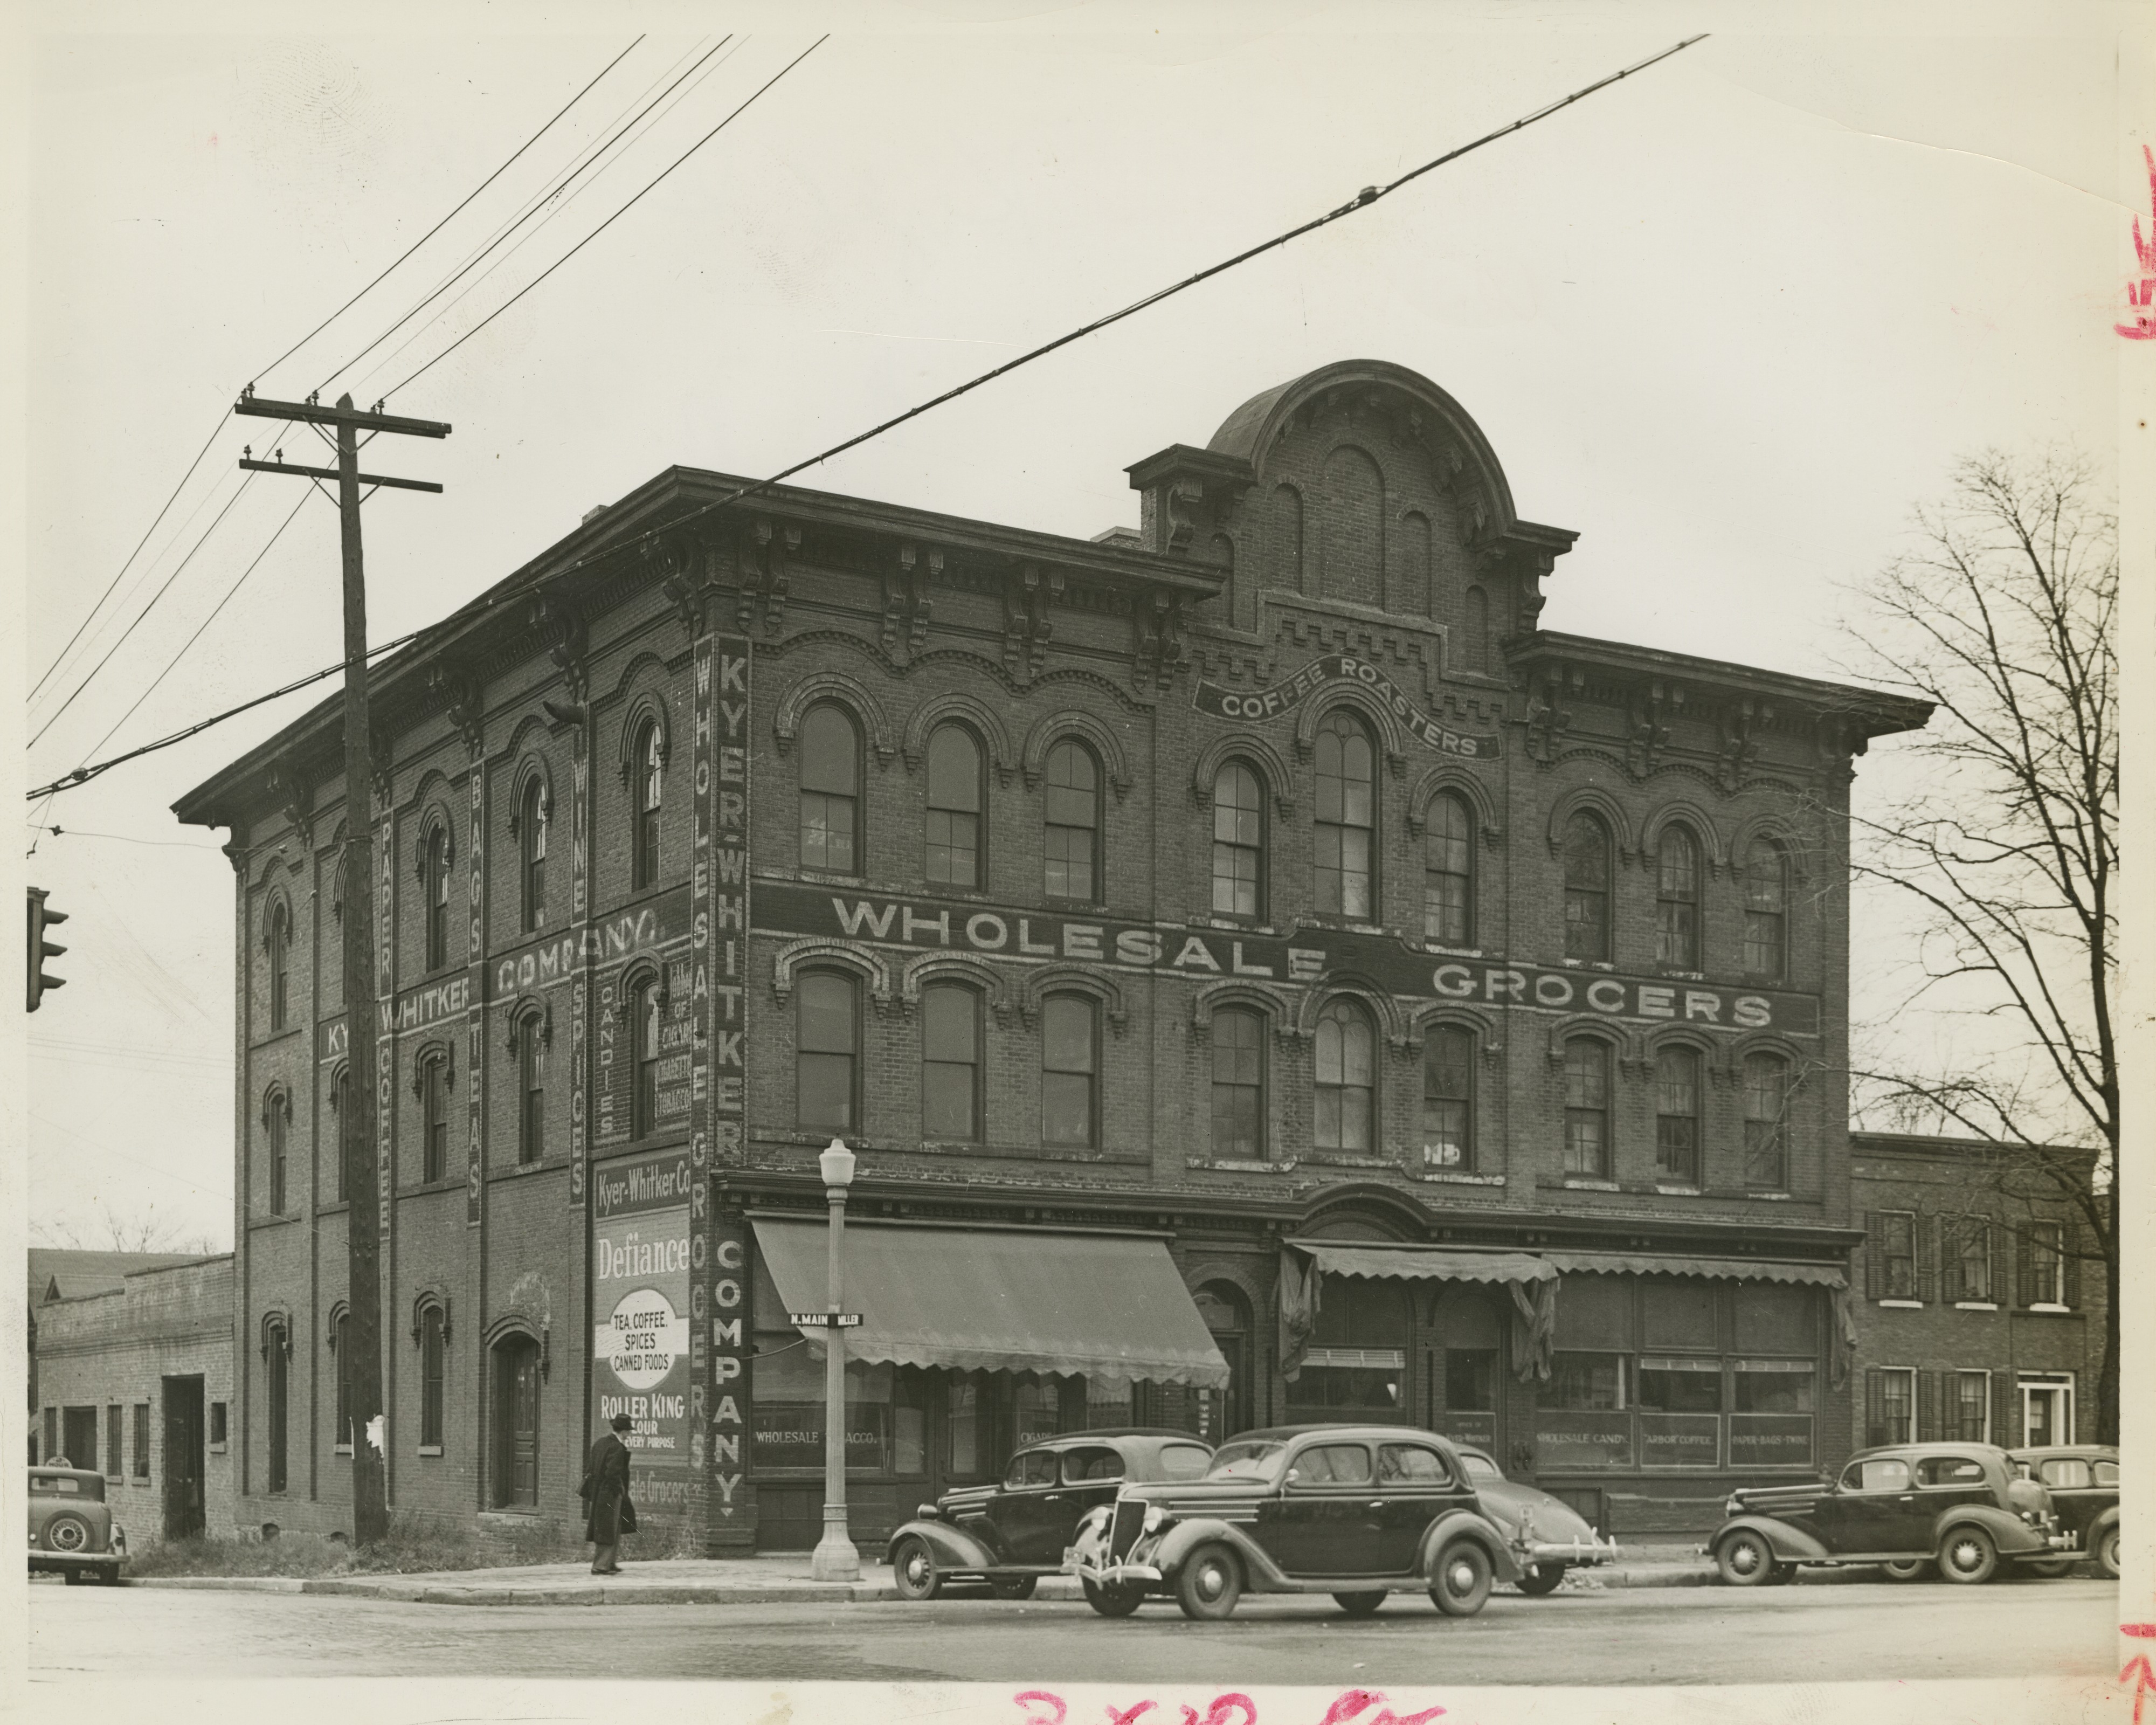 Kyer-Whitker building at Main St and Miller Ave, 1938 image